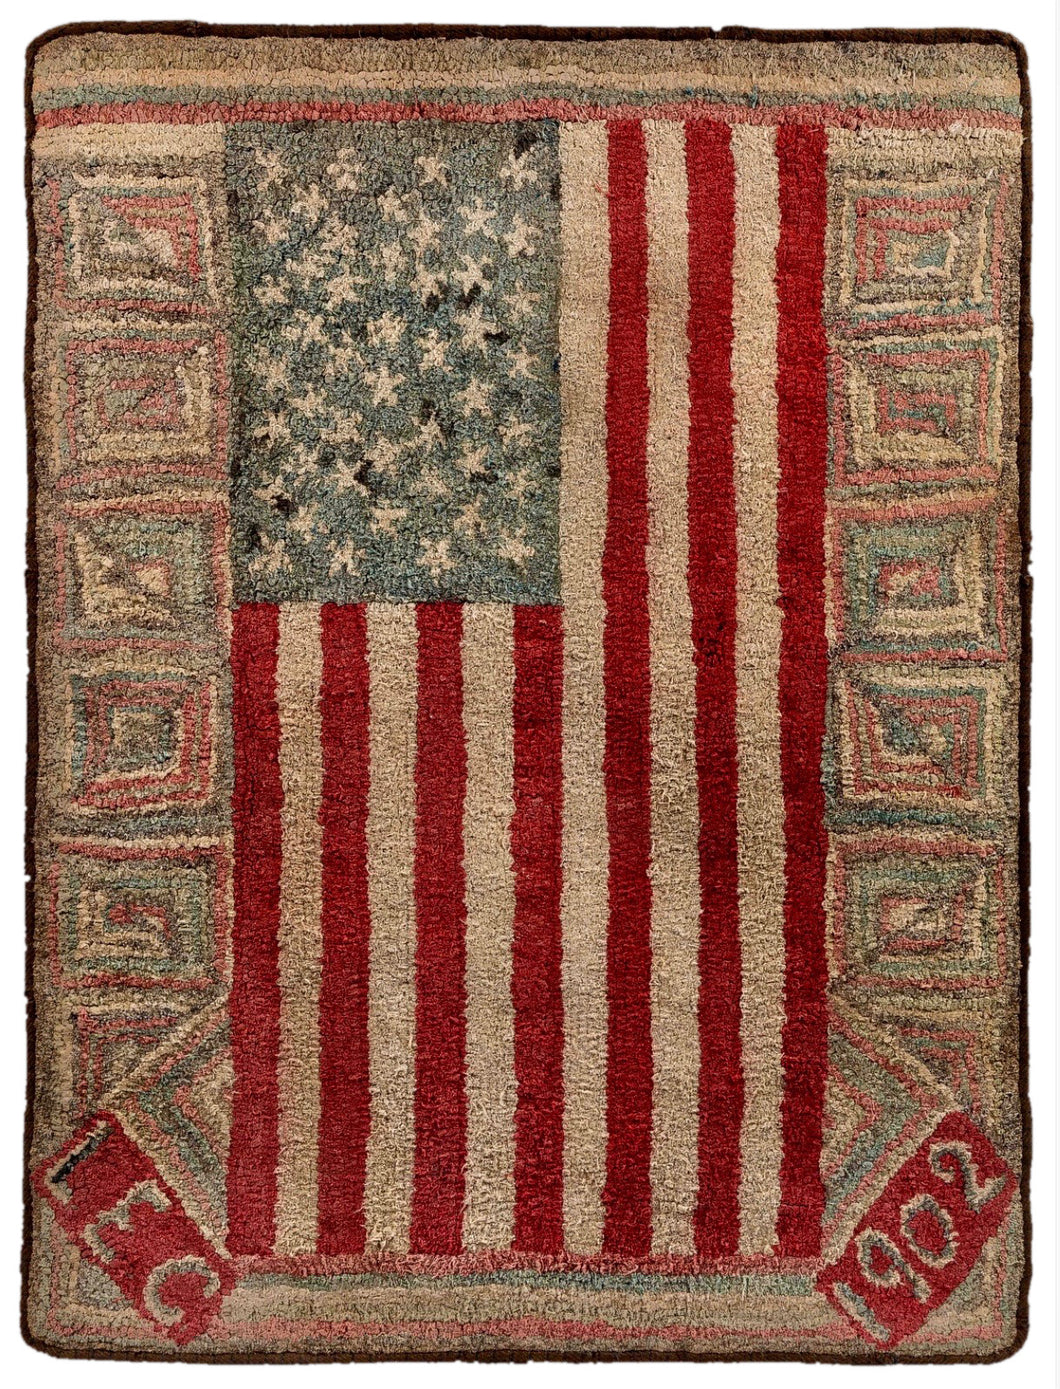 Laura's 46 Star Flag 1902 (#403)